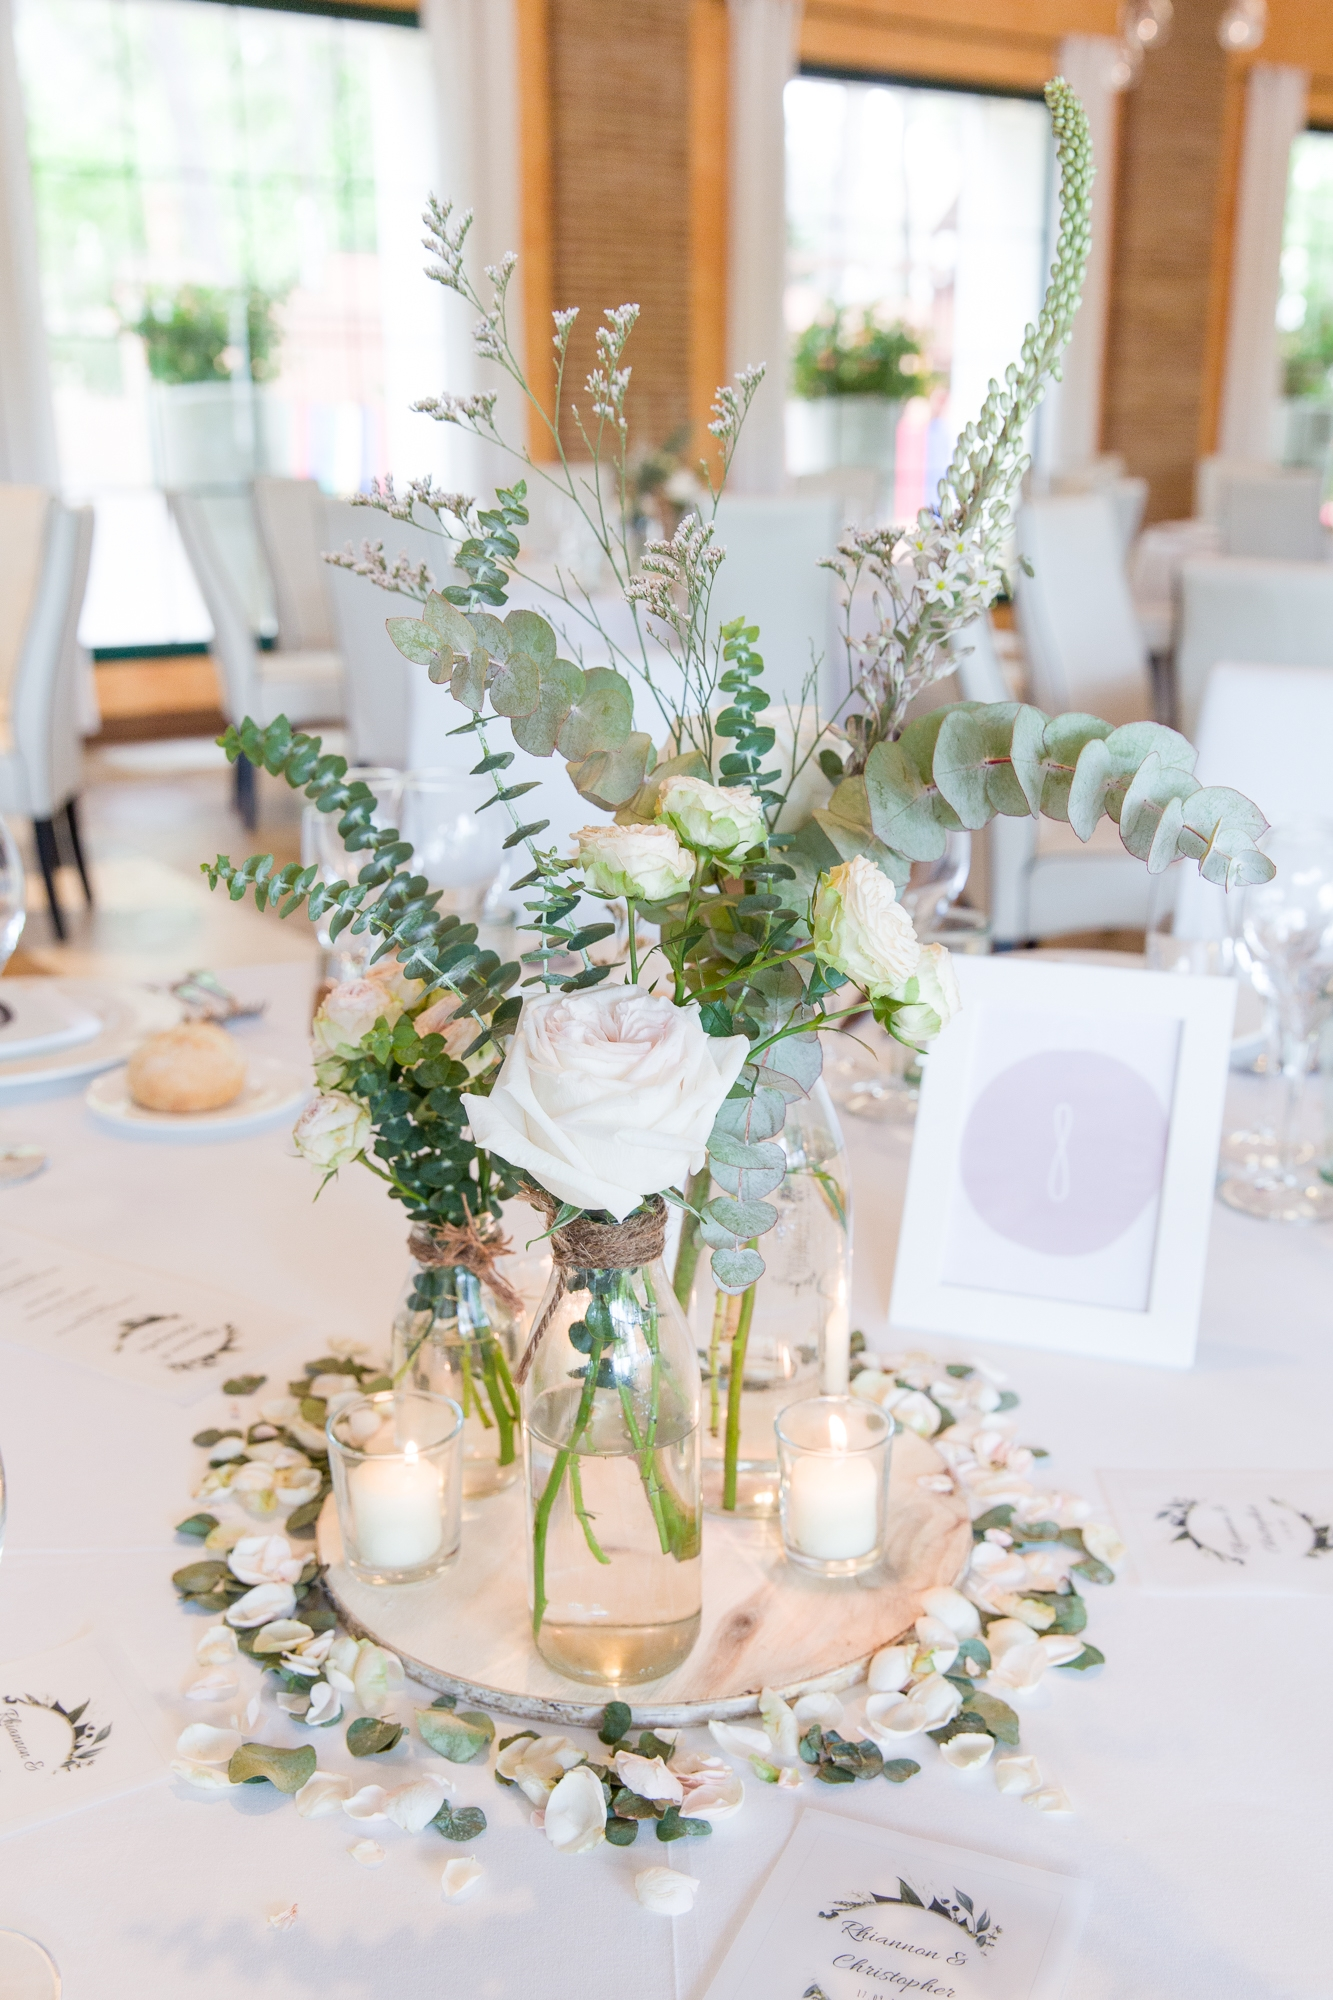 wedding table with white centrepiece at Hotel Les Rotes wedding